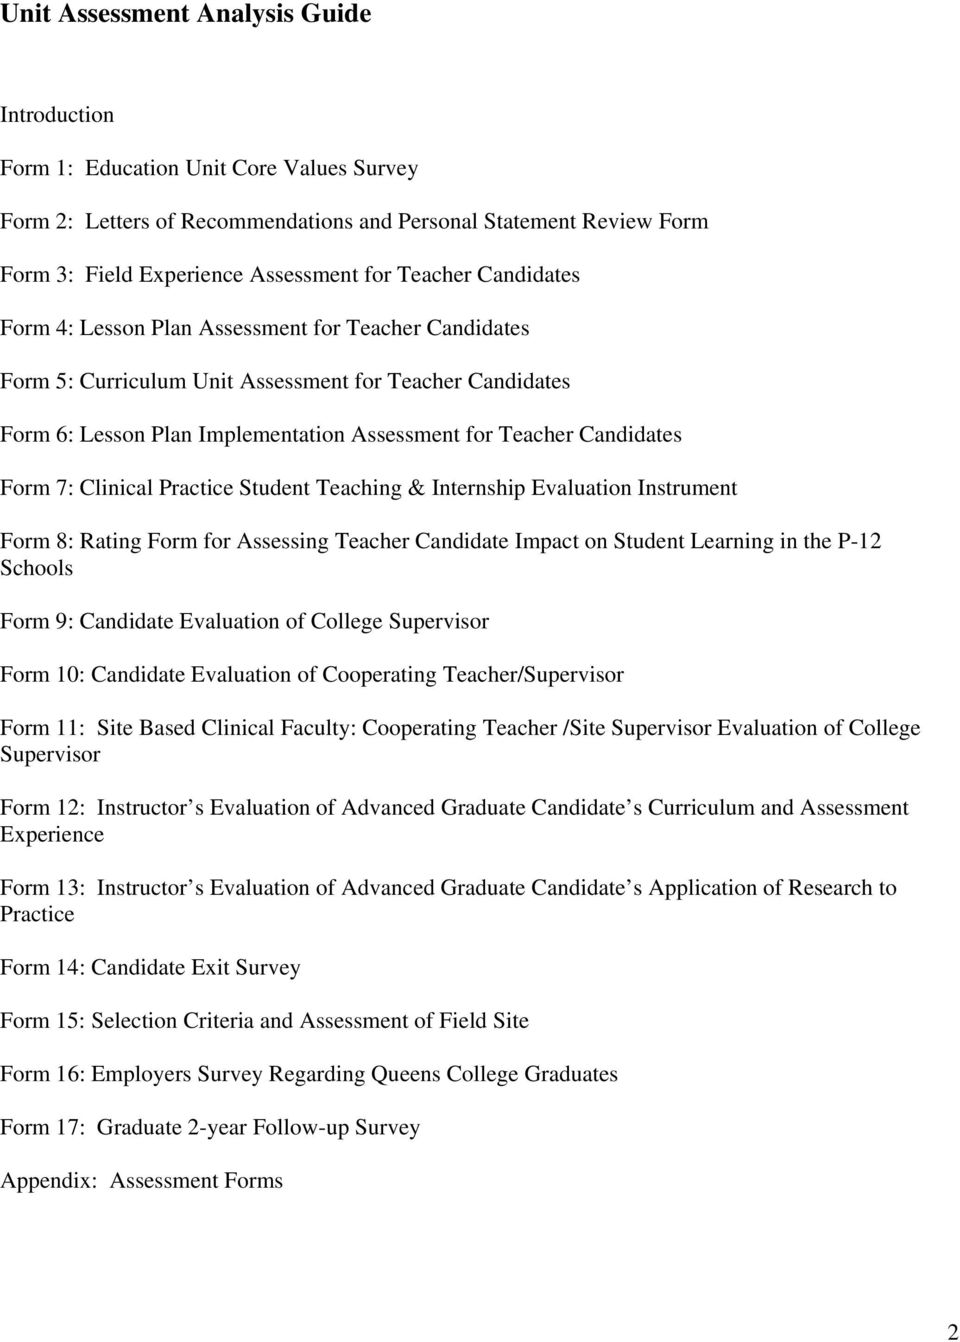 Form 7: Clinical Practice Student Teaching & Internship Evaluation Instrument Form 8: Rating Form for Assessing Teacher Candidate Impact on Student Learning in the P-12 Schools Form 9: Candidate